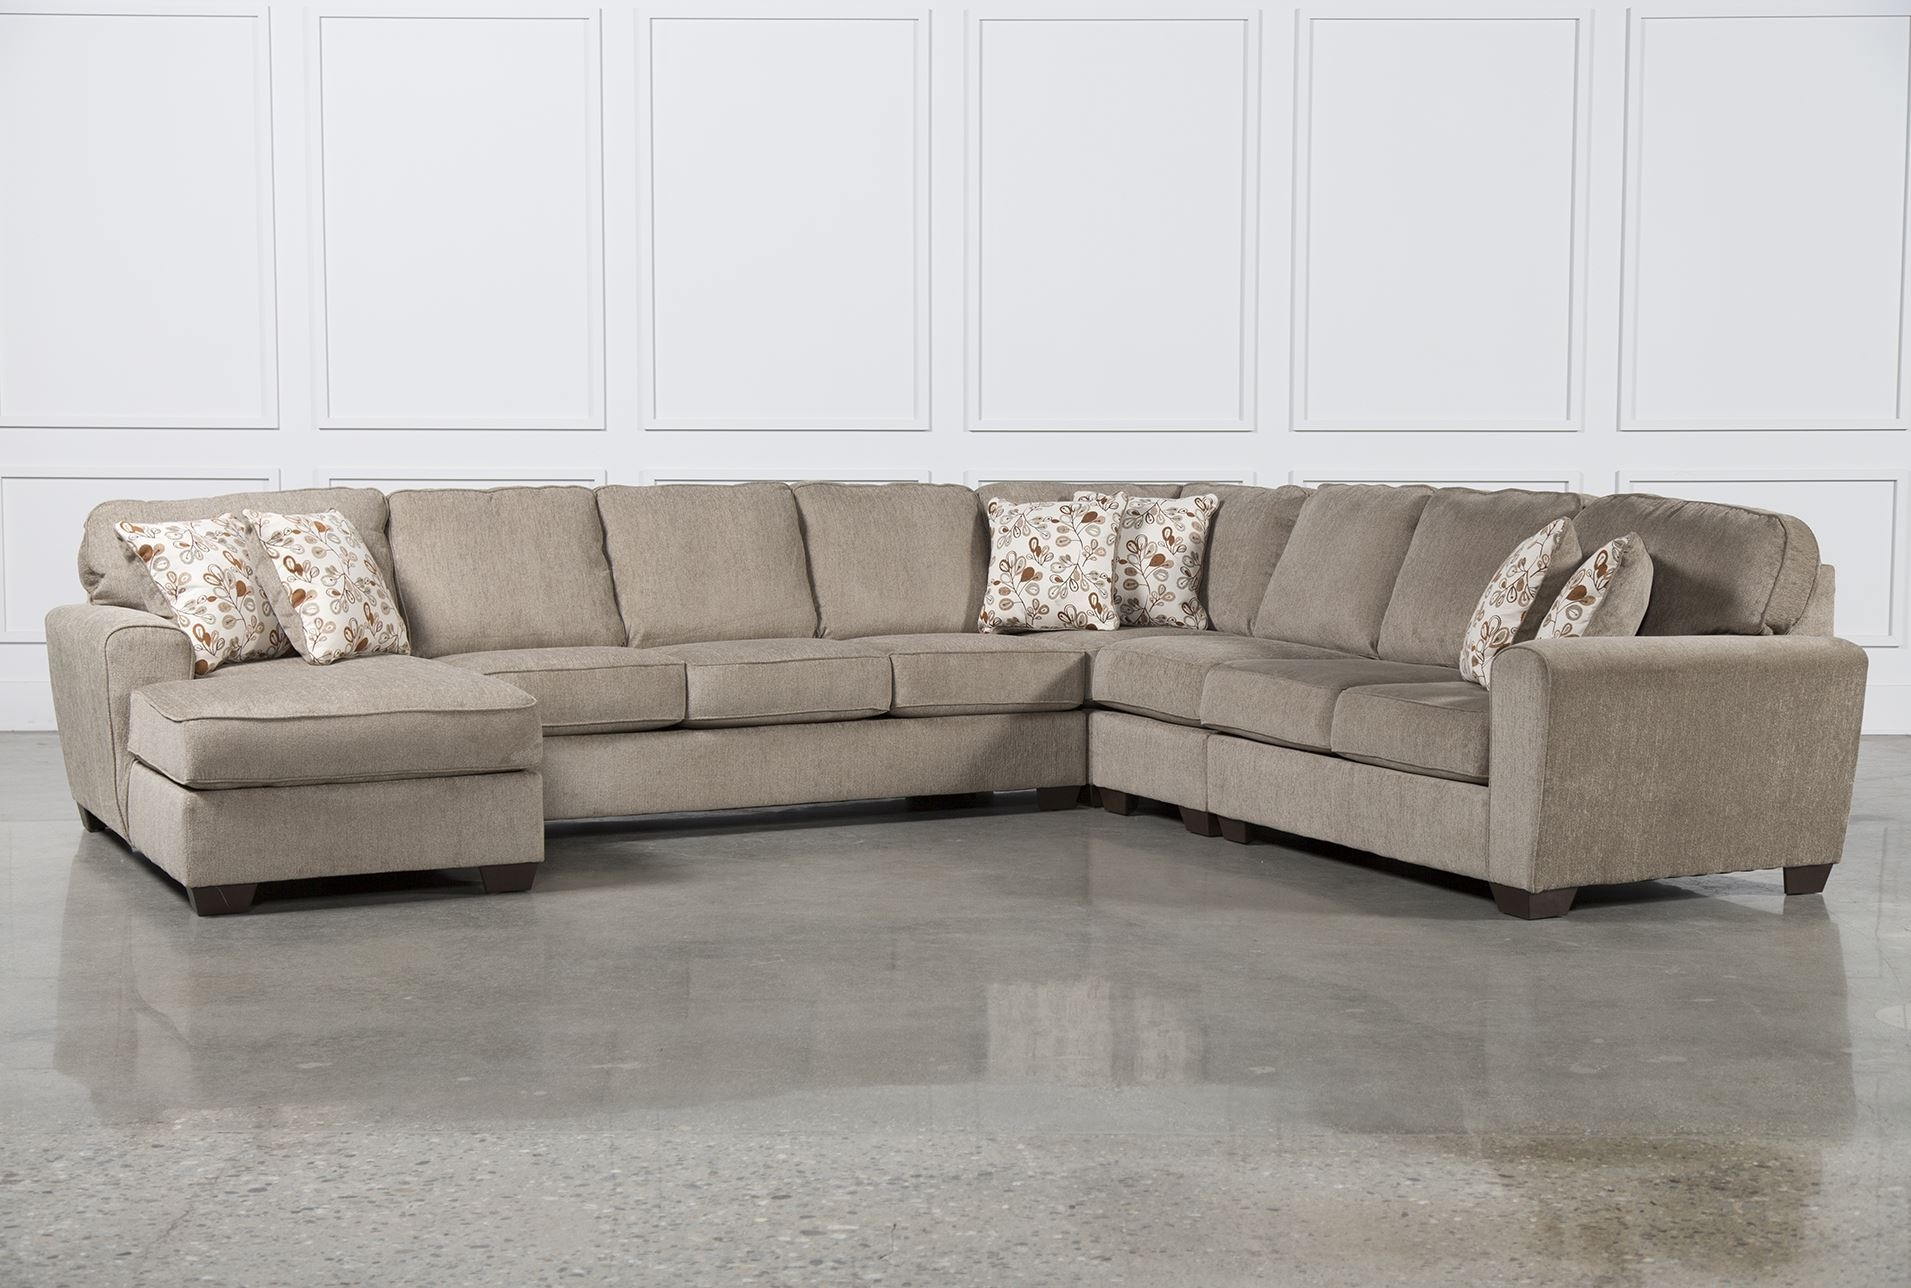 Ideas Of Laf Chaise On Kerri 2 Piece Sectional W Laf Chaise Living Inside Kerri 2 Piece Sectionals With Raf Chaise (Image 10 of 25)